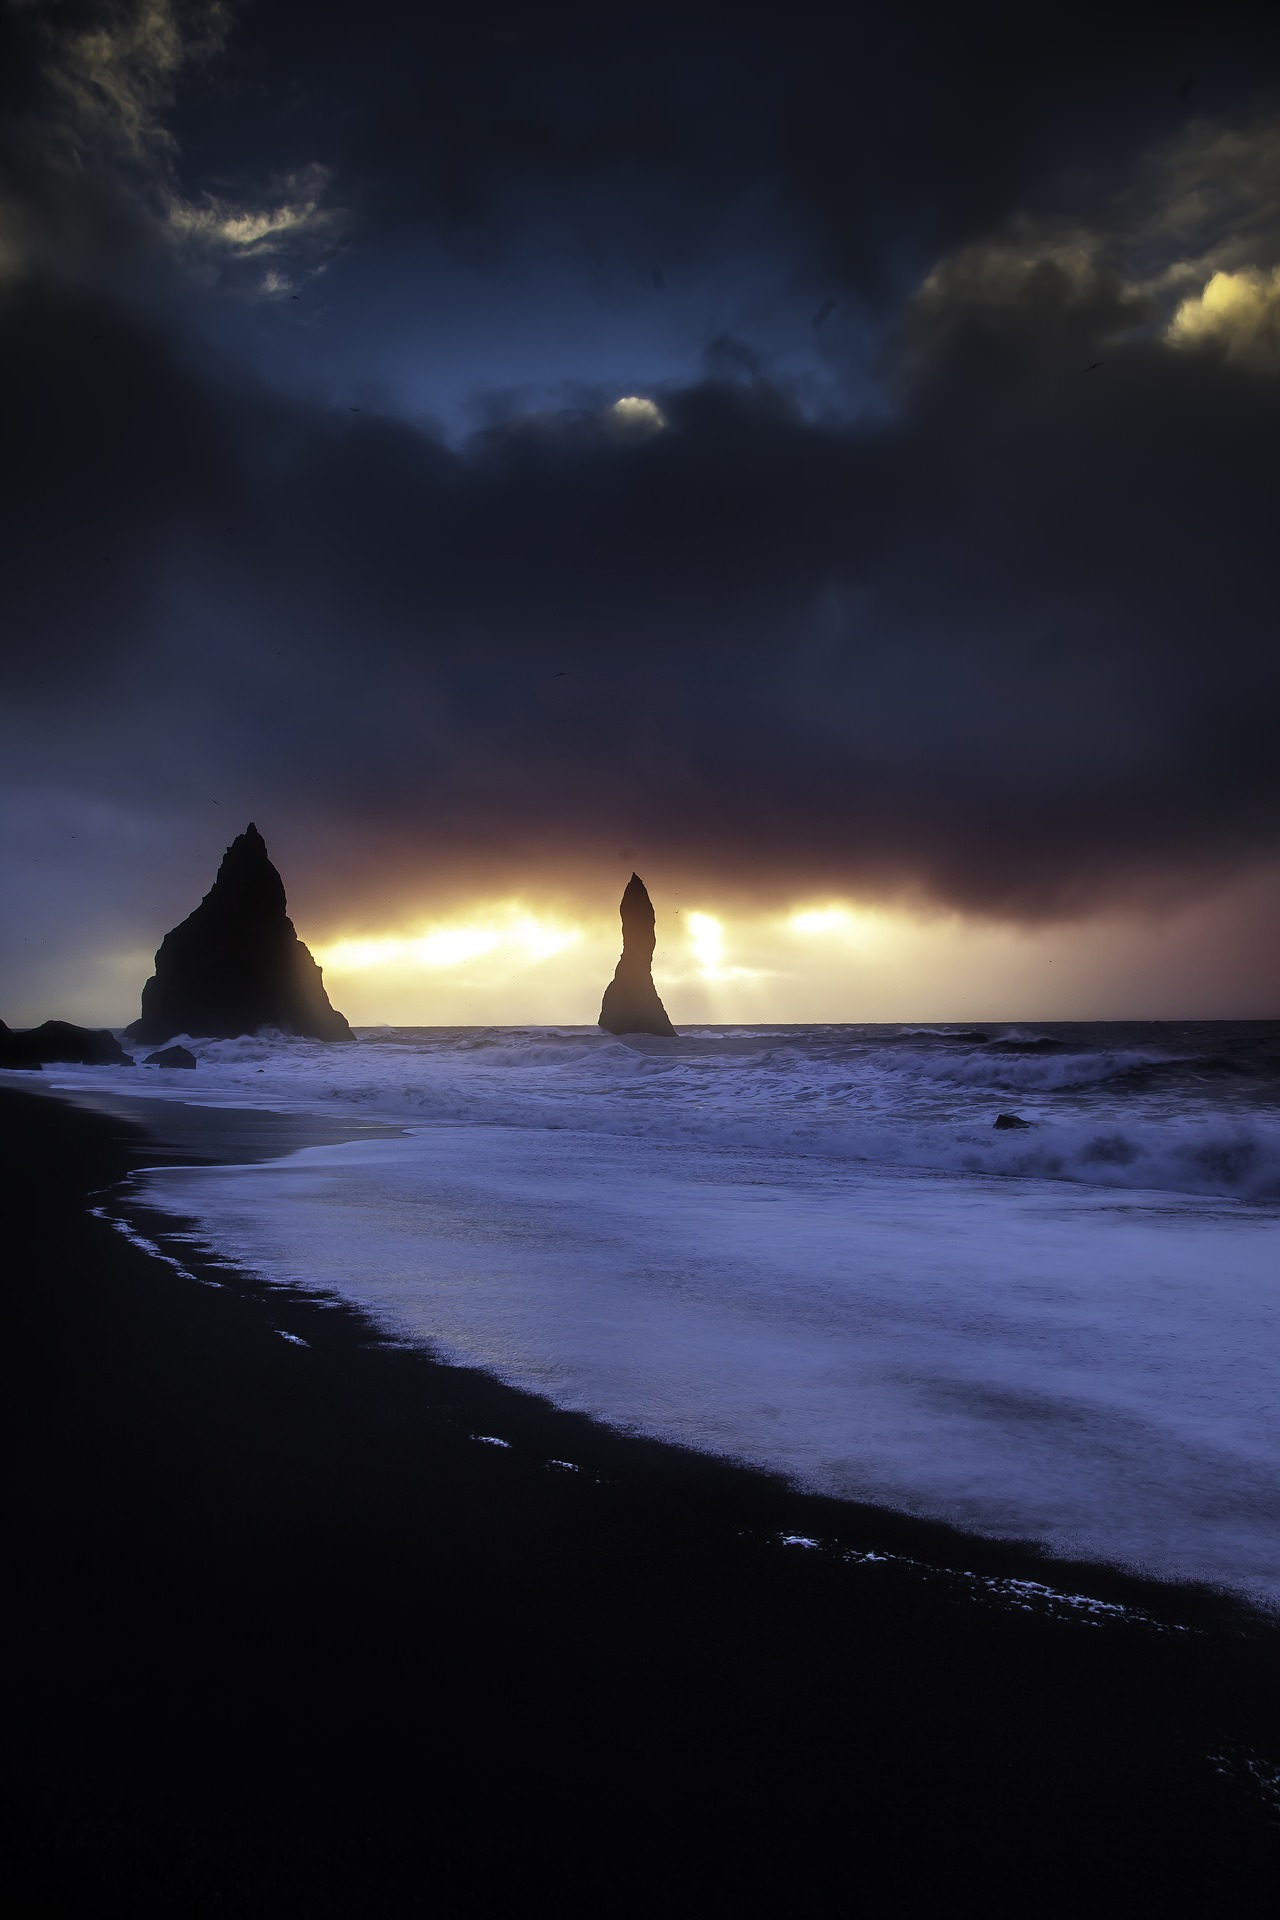 Reynisfjara location in iceland and best time to photograph